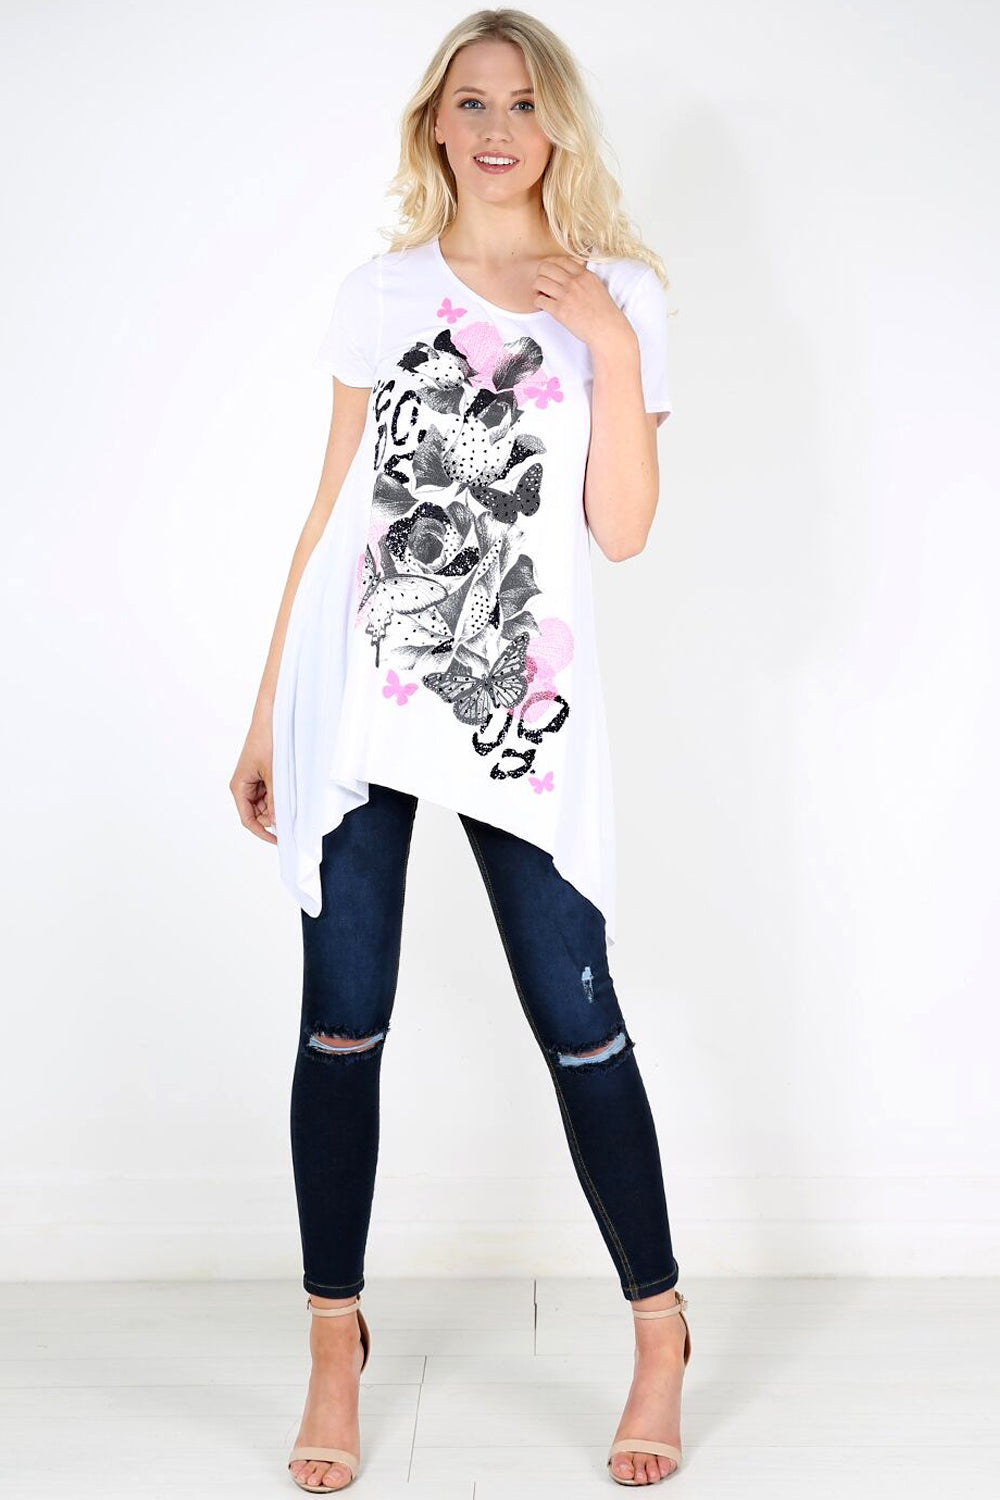 Dipped Hem Graphic Print Swing Tshirt